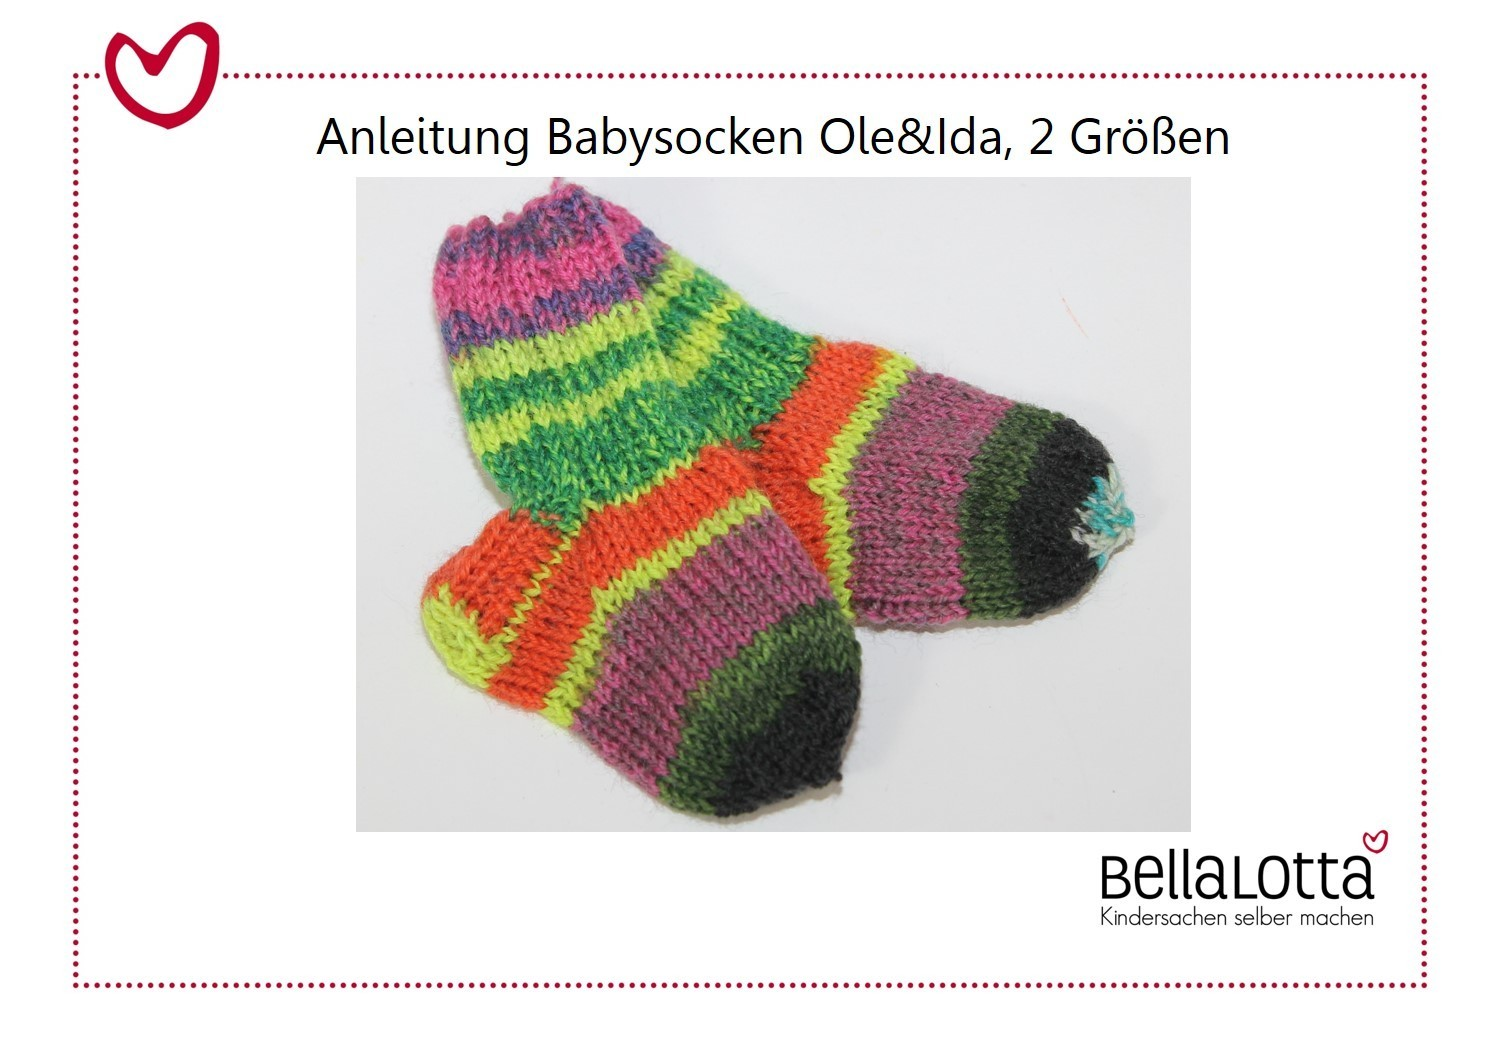 anleitung stricken socken babysocken anleitung strickanleitung g nstig babyschuhe. Black Bedroom Furniture Sets. Home Design Ideas